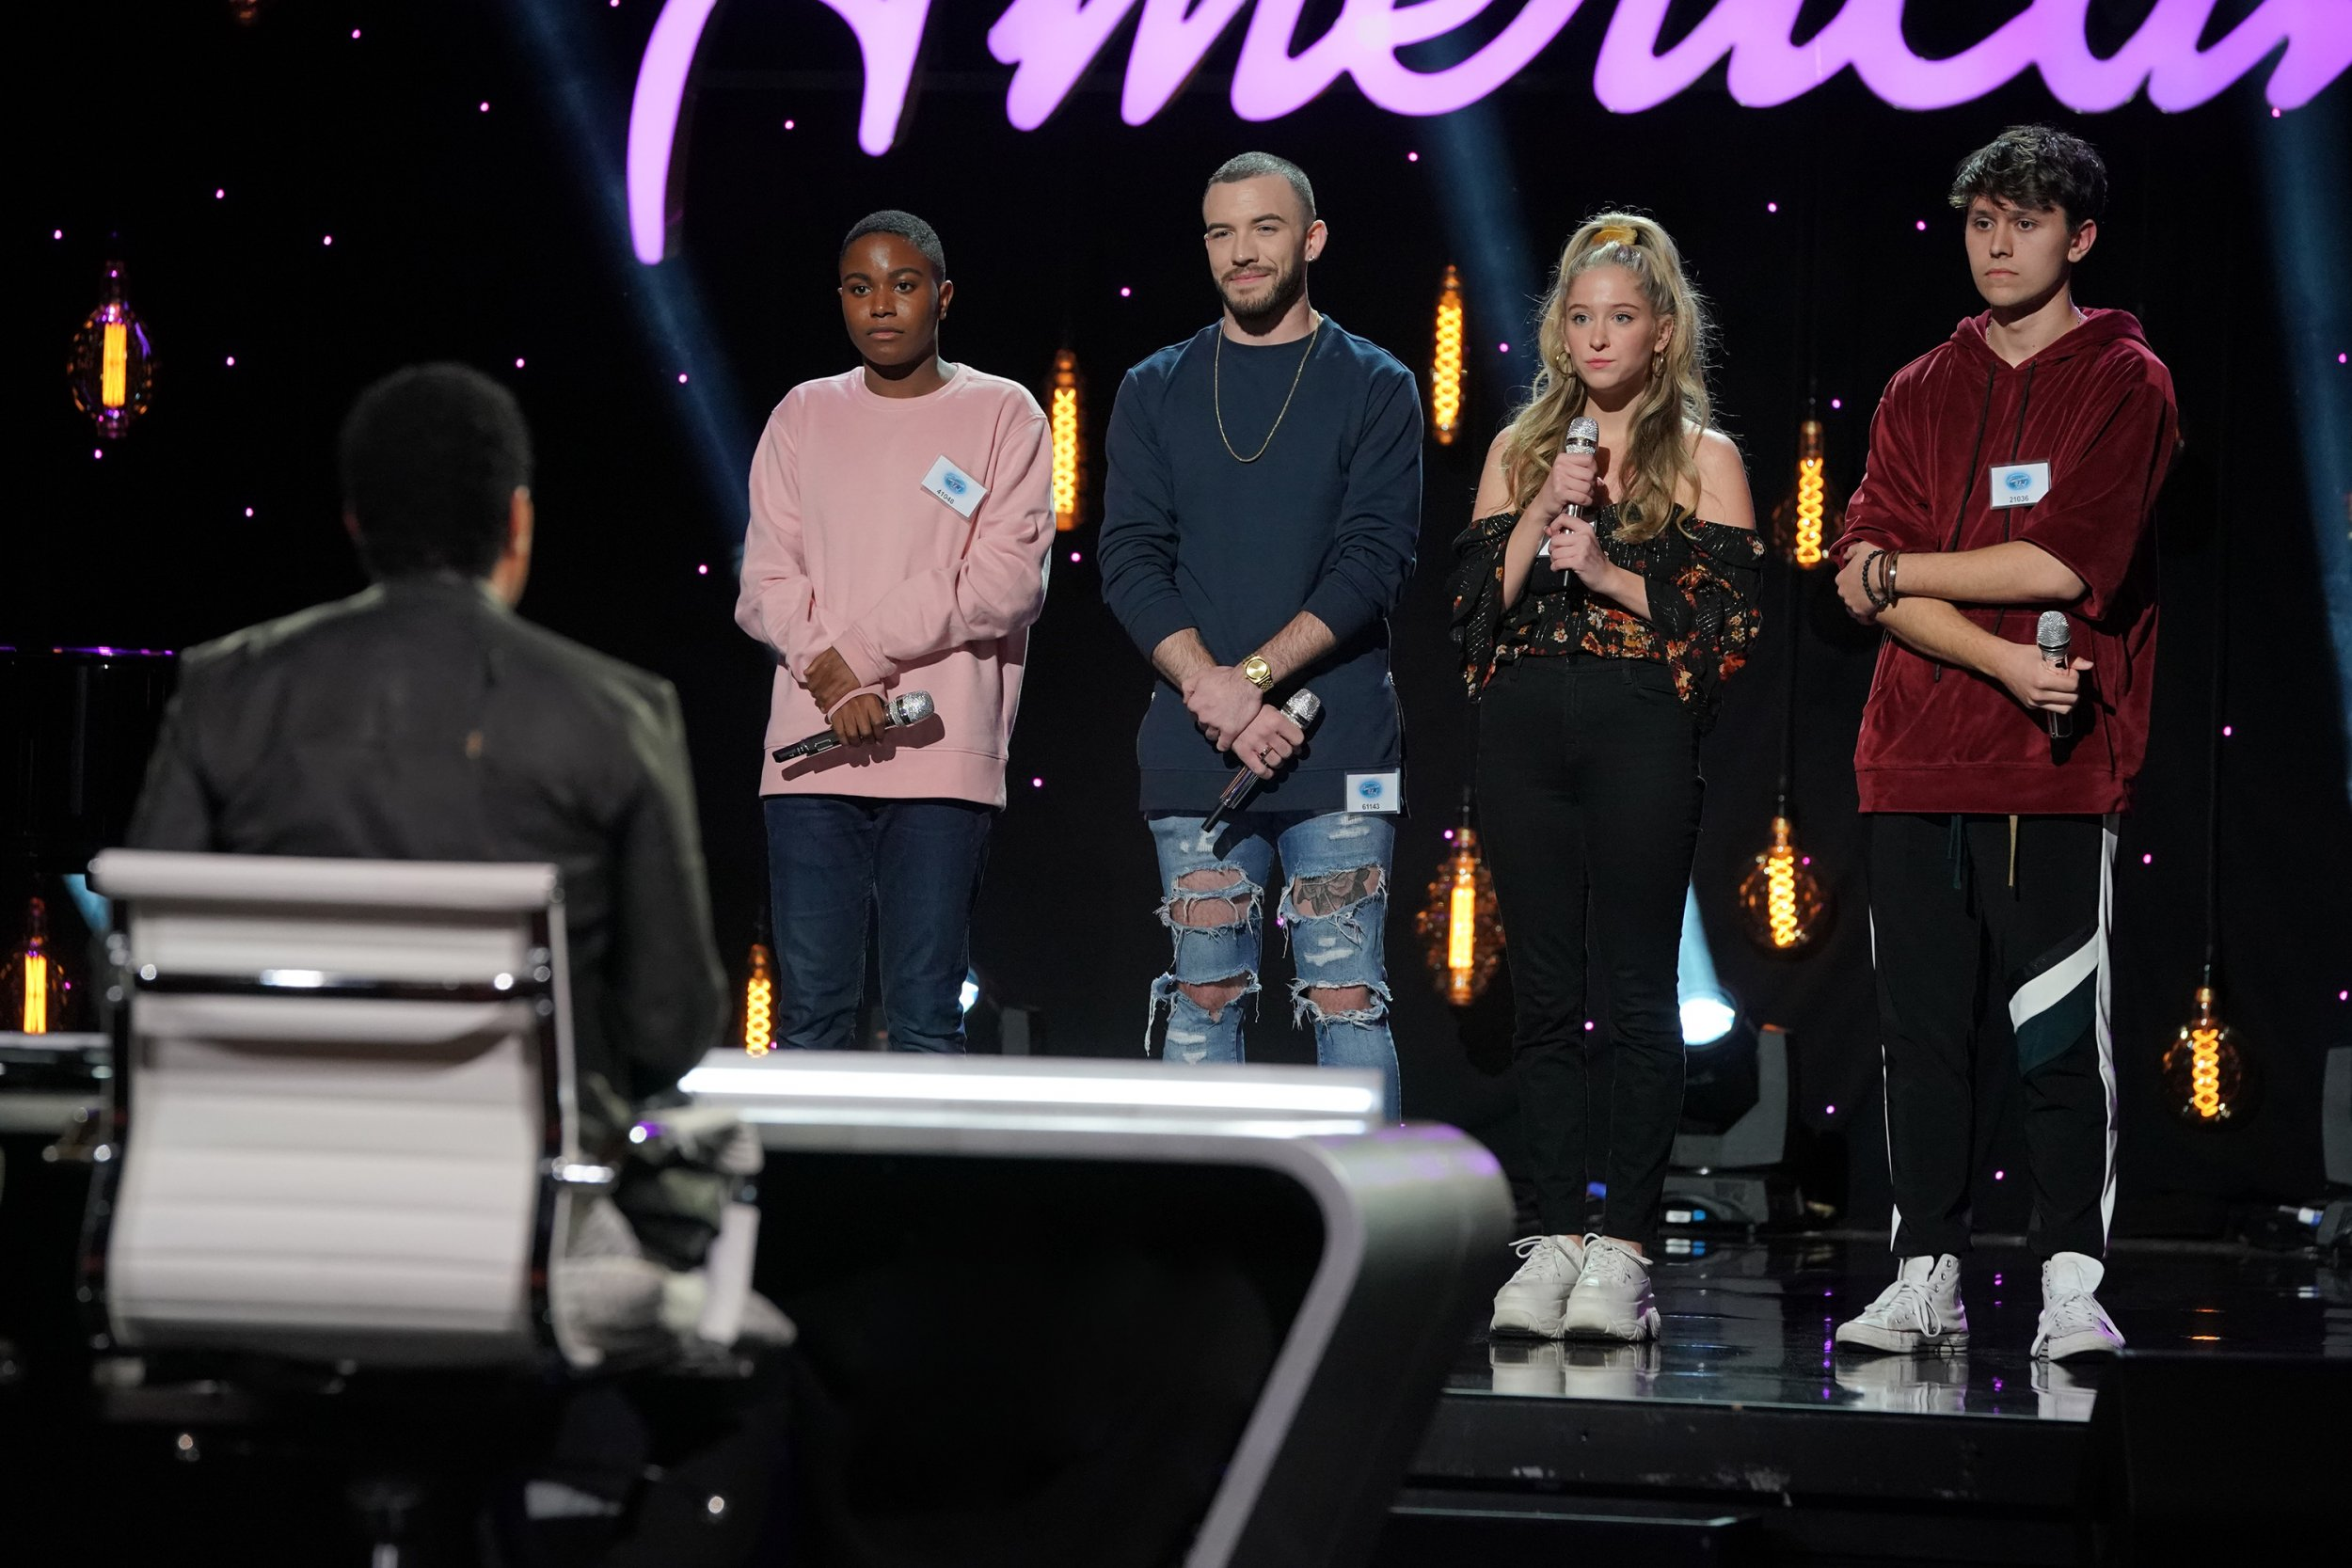 American Idol' Episode 7 Spoilers & Recap: Concluding Hollywood Week–Will Nate Walker Be Able to Perform?